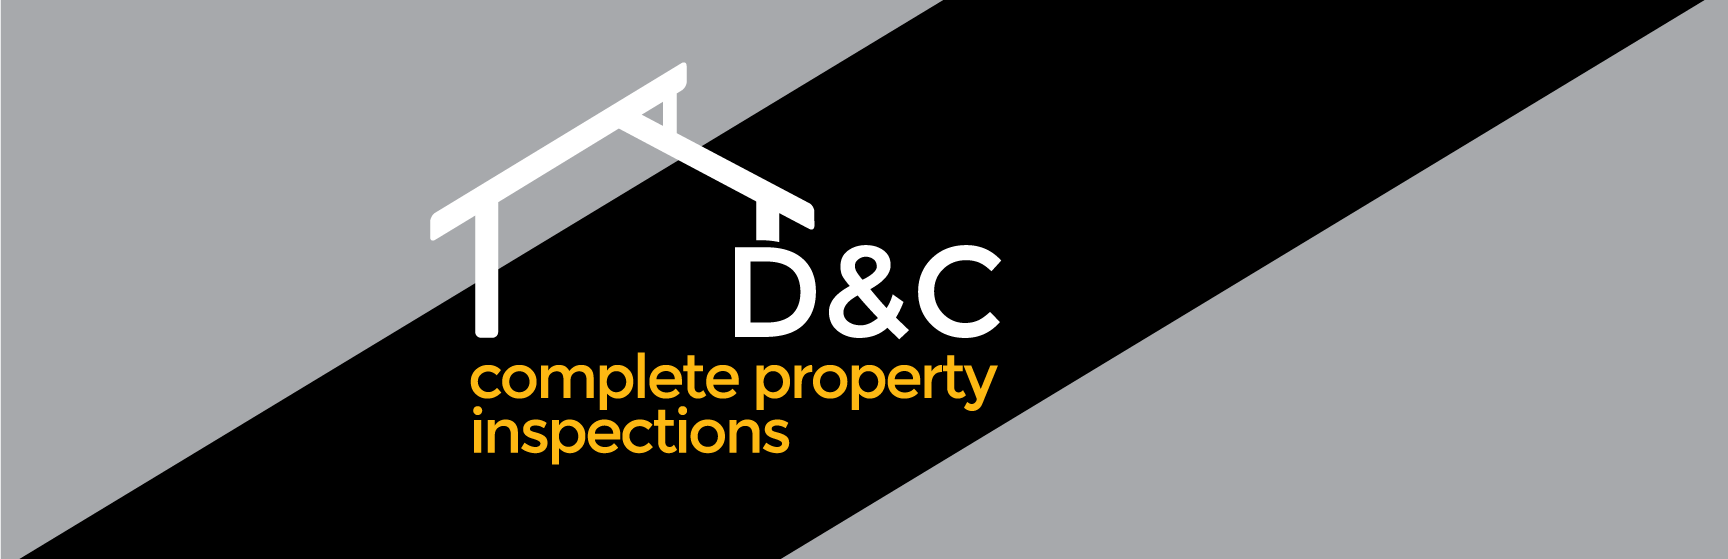 Complete Property Inspections